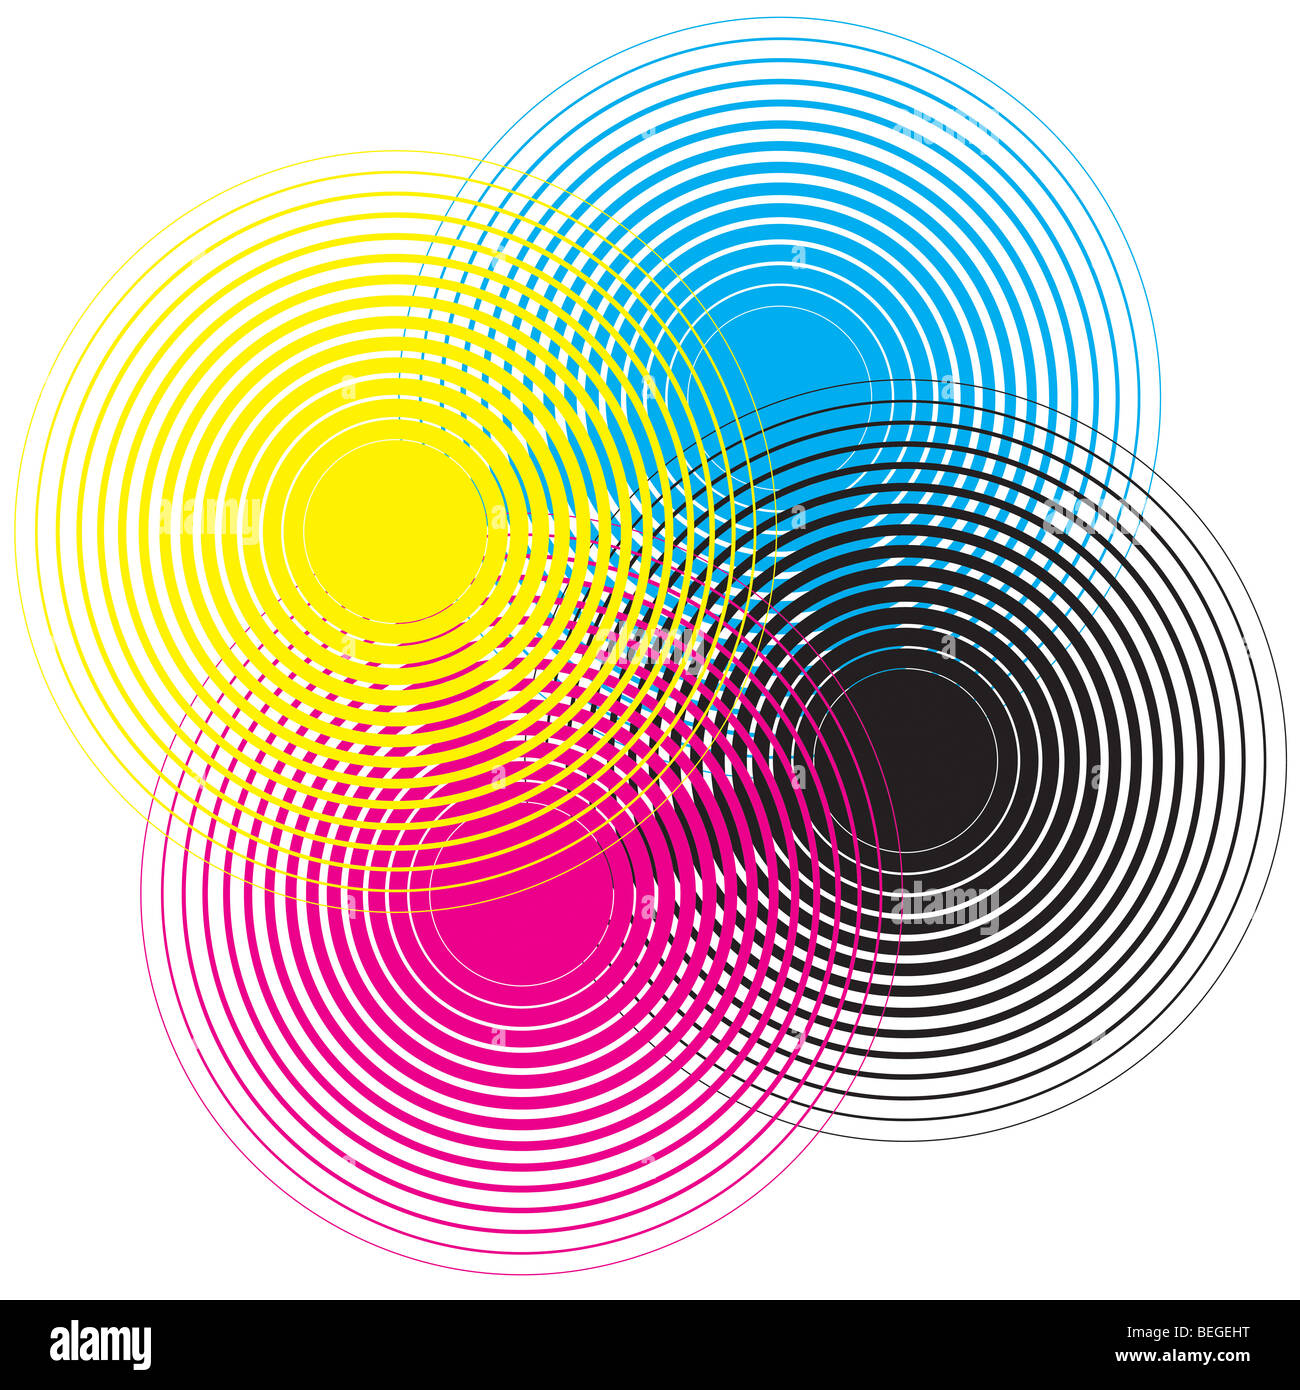 Cmyk circle texture on a white background - Stock Image